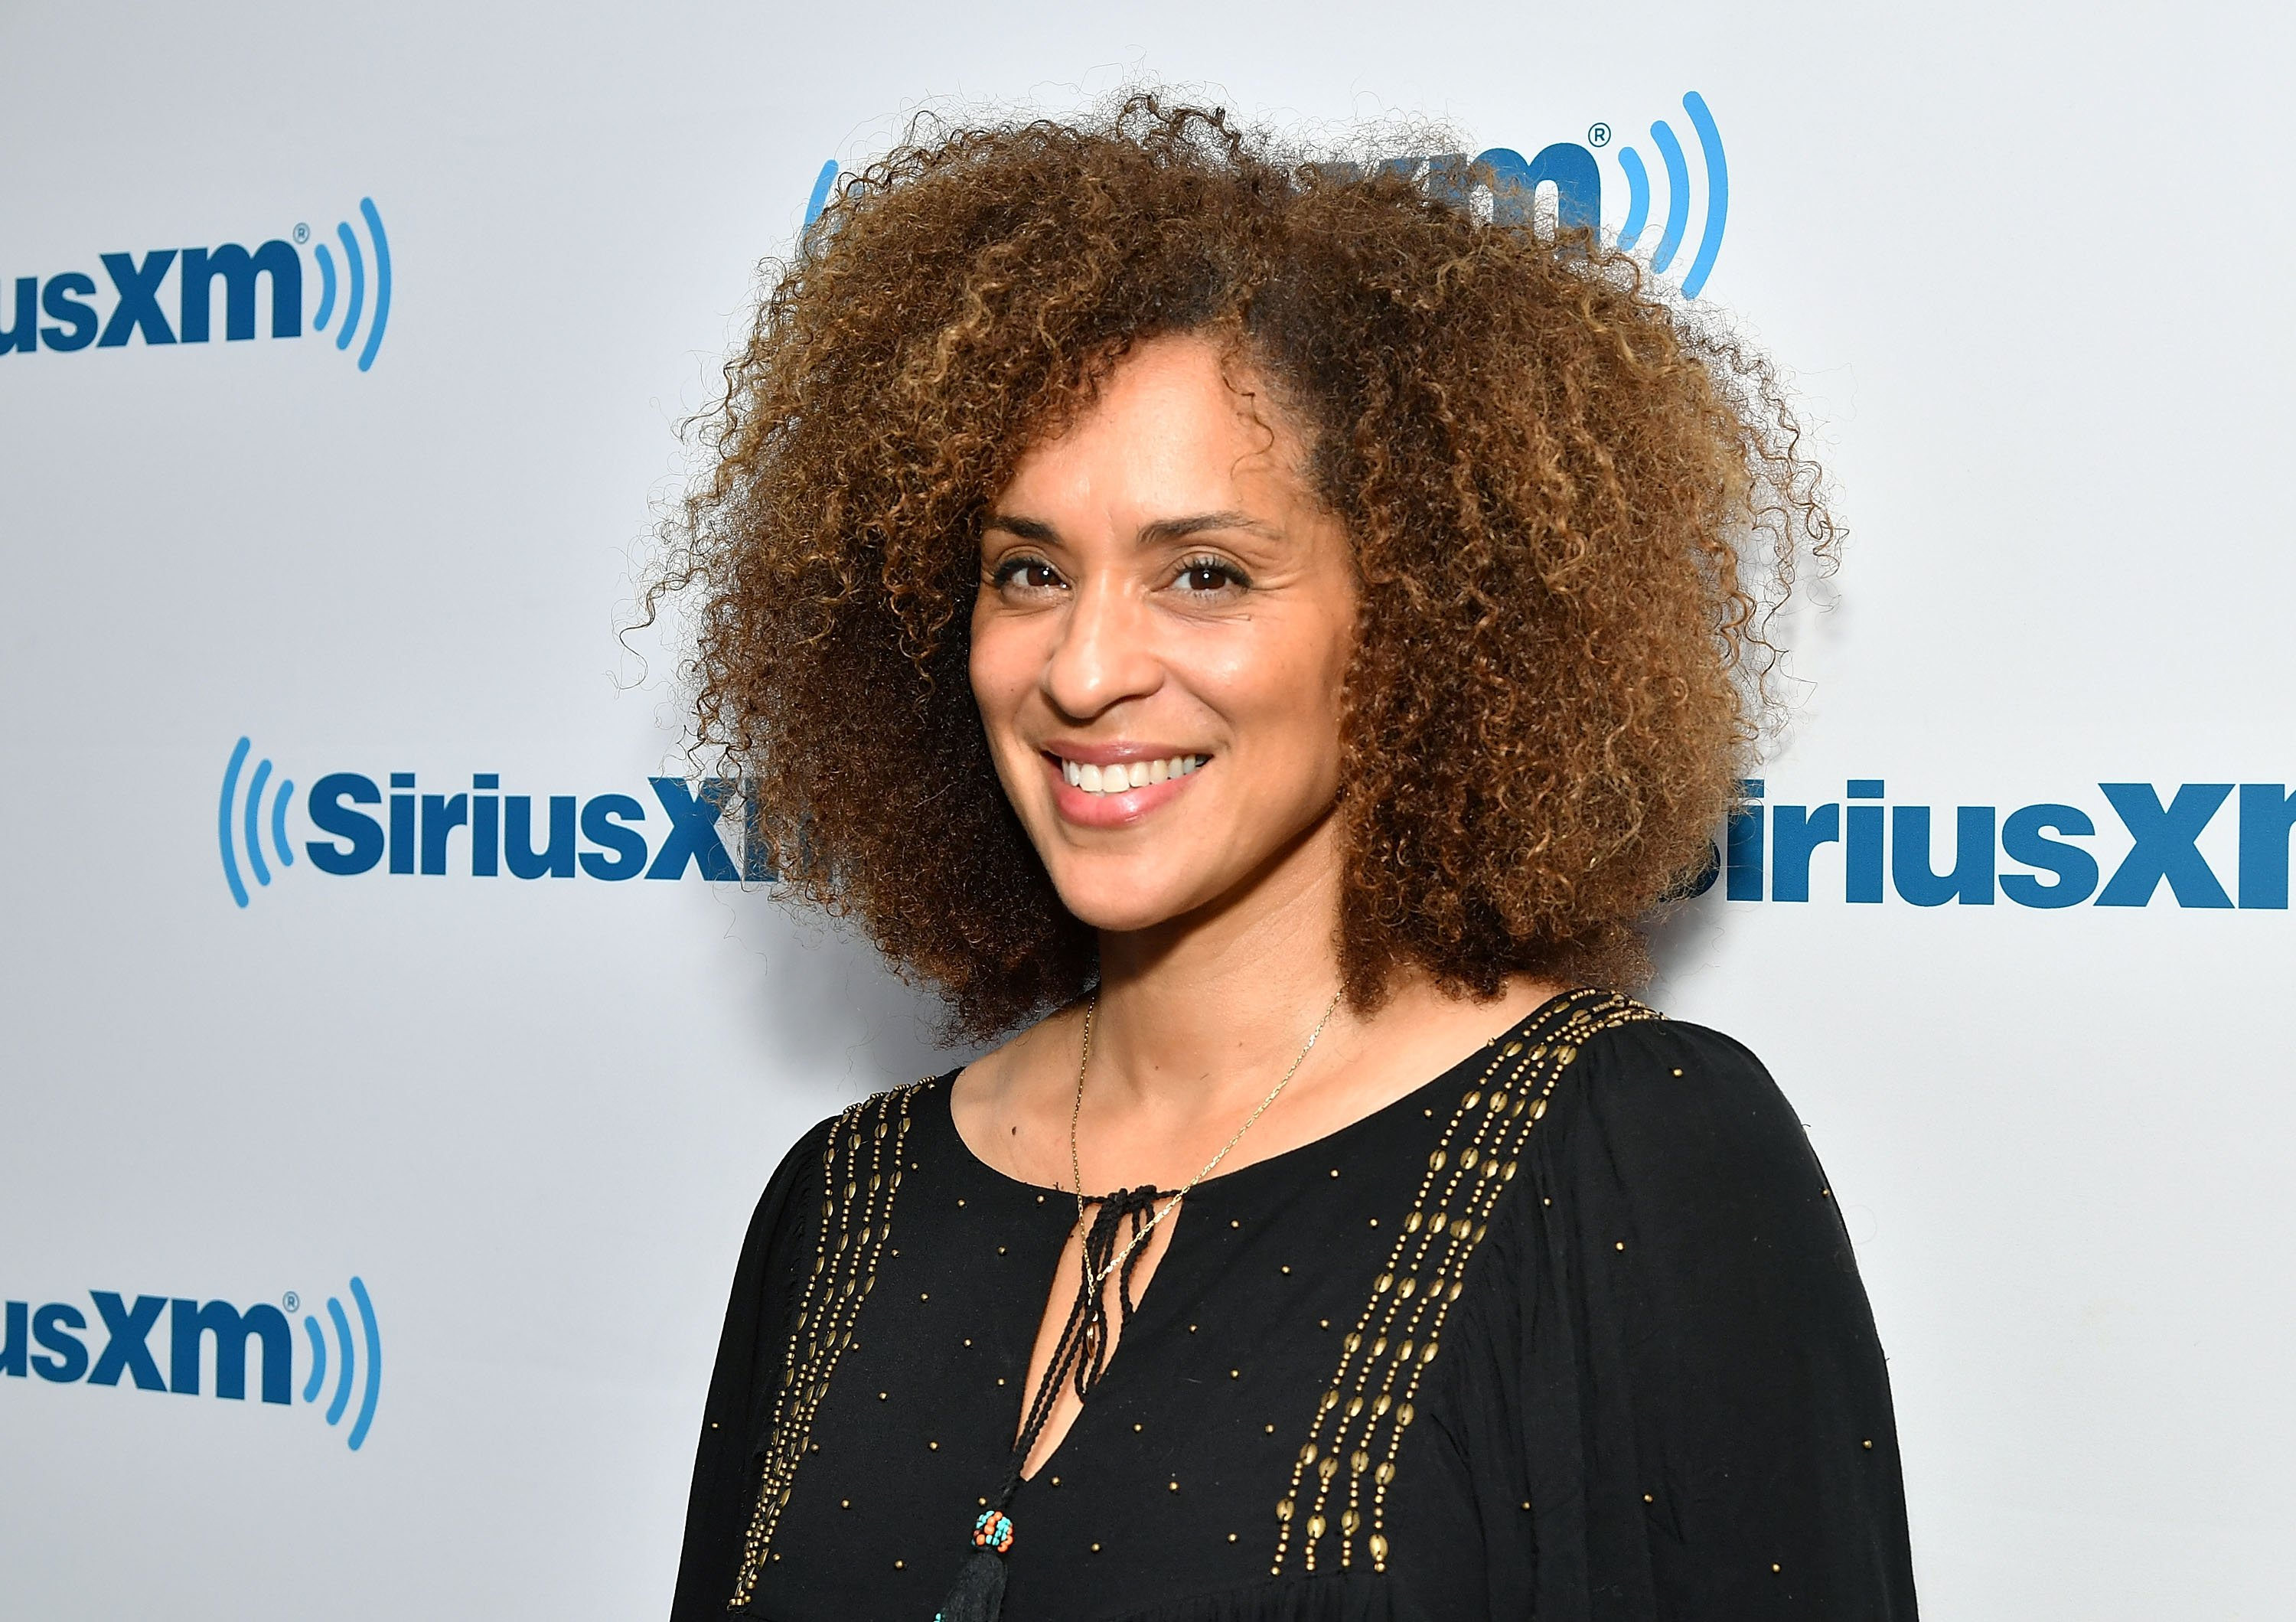 Actress Karyn Parsons visits SiriusXM Studios on June 1, 2017. | Source: GettyImages/Global Images of Ukraine